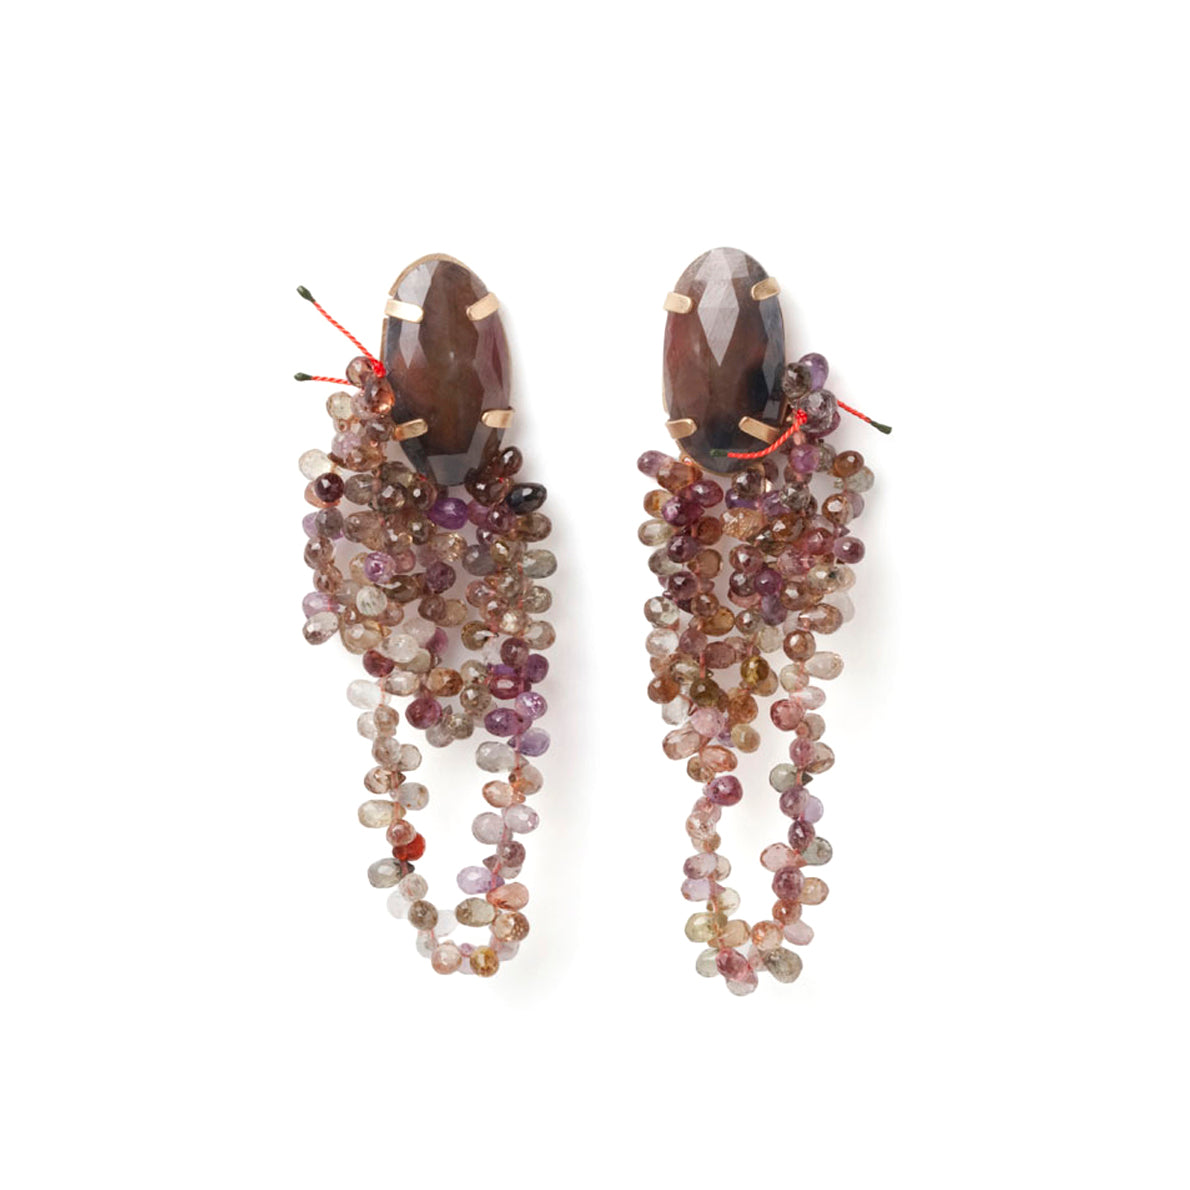 Brown and purple bead earrings